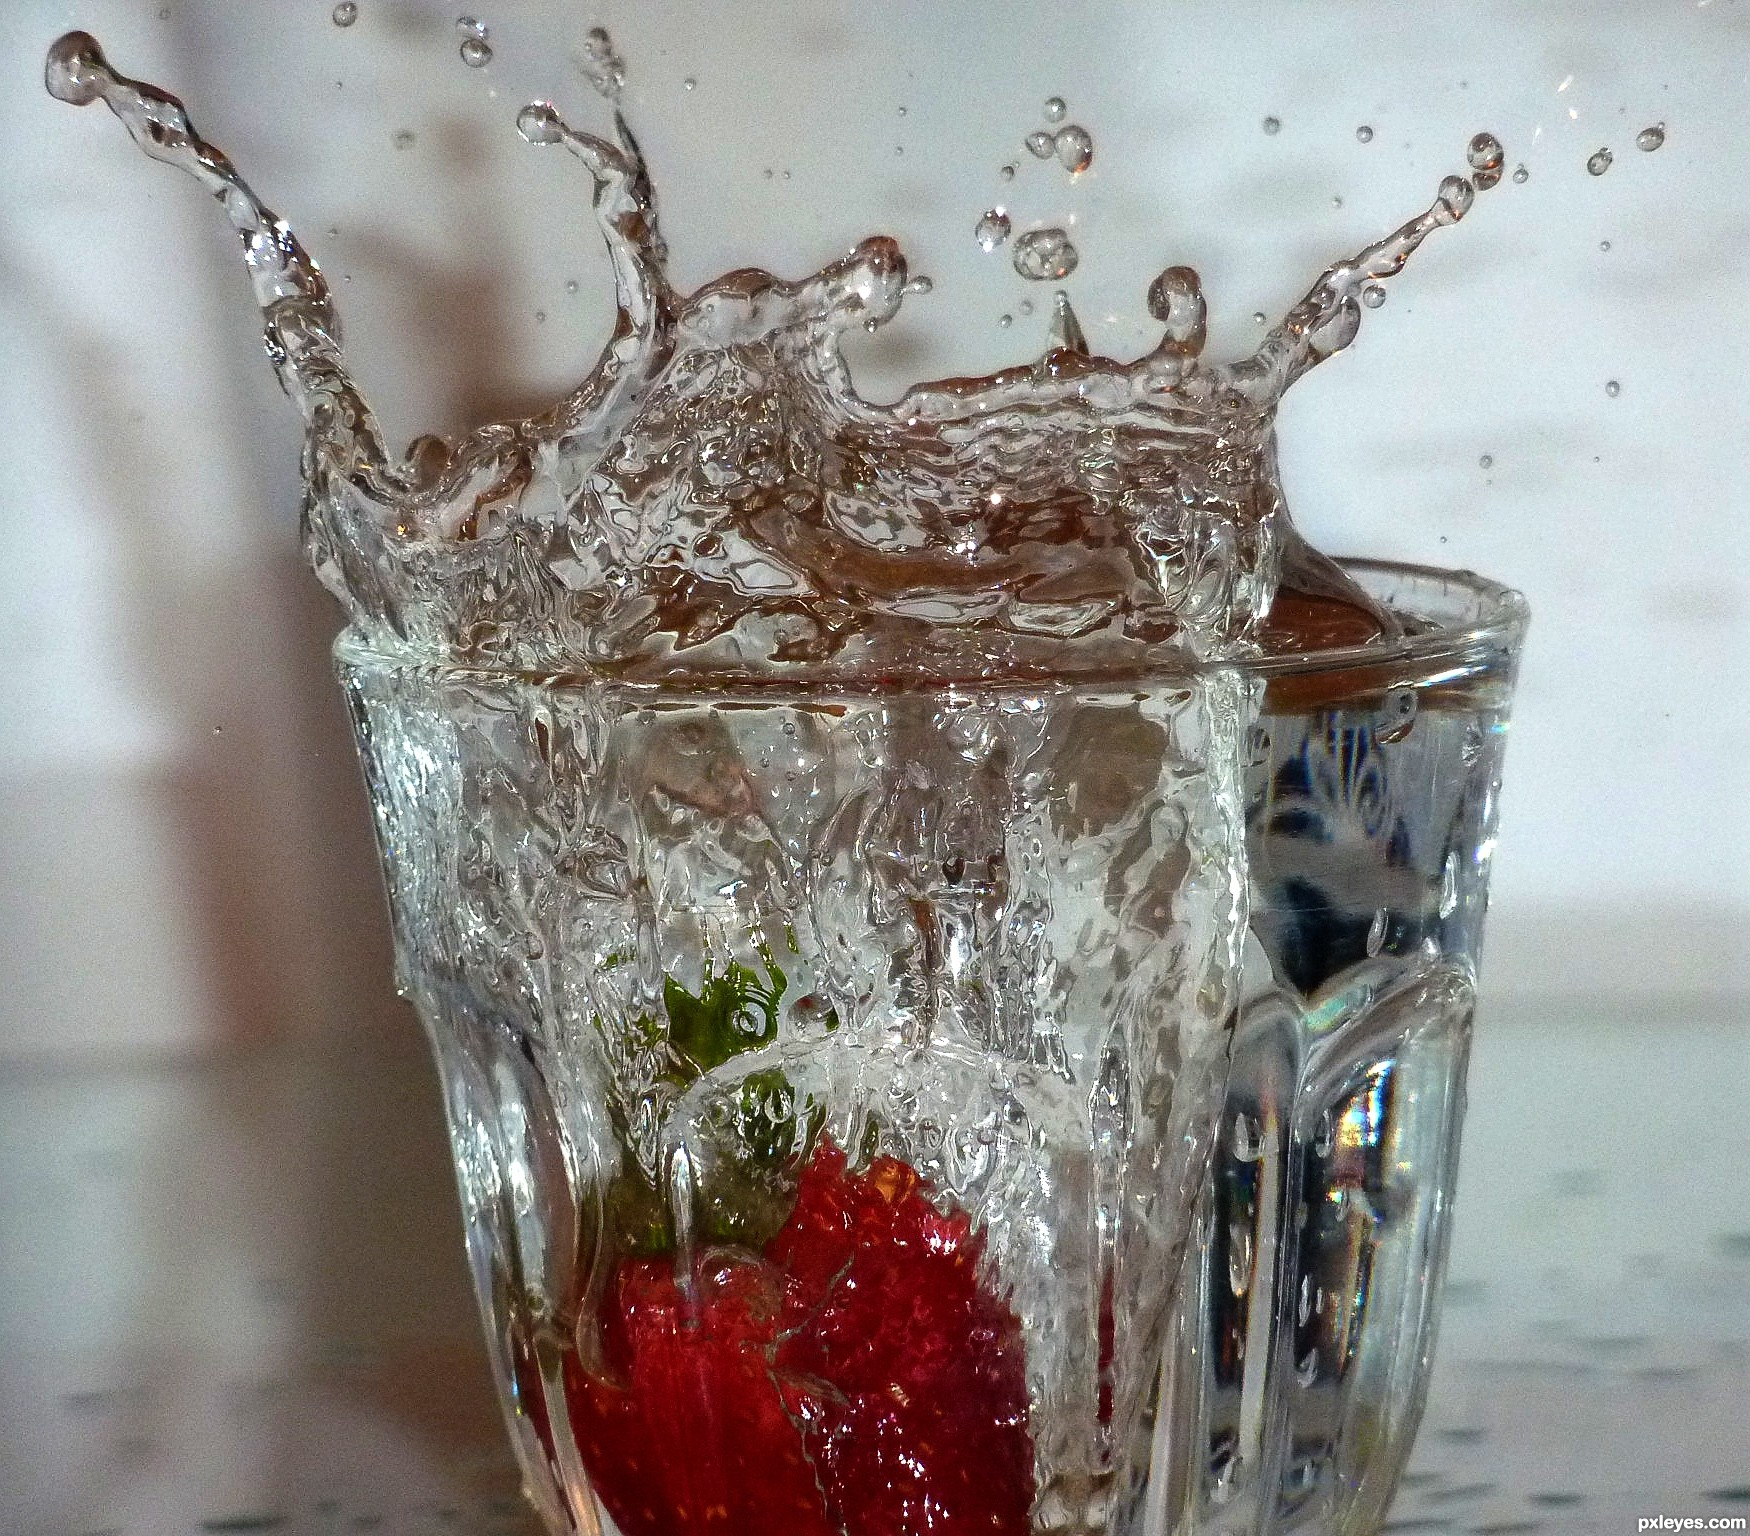 Home Photography Contests Stop Motion Strawberry In The Water